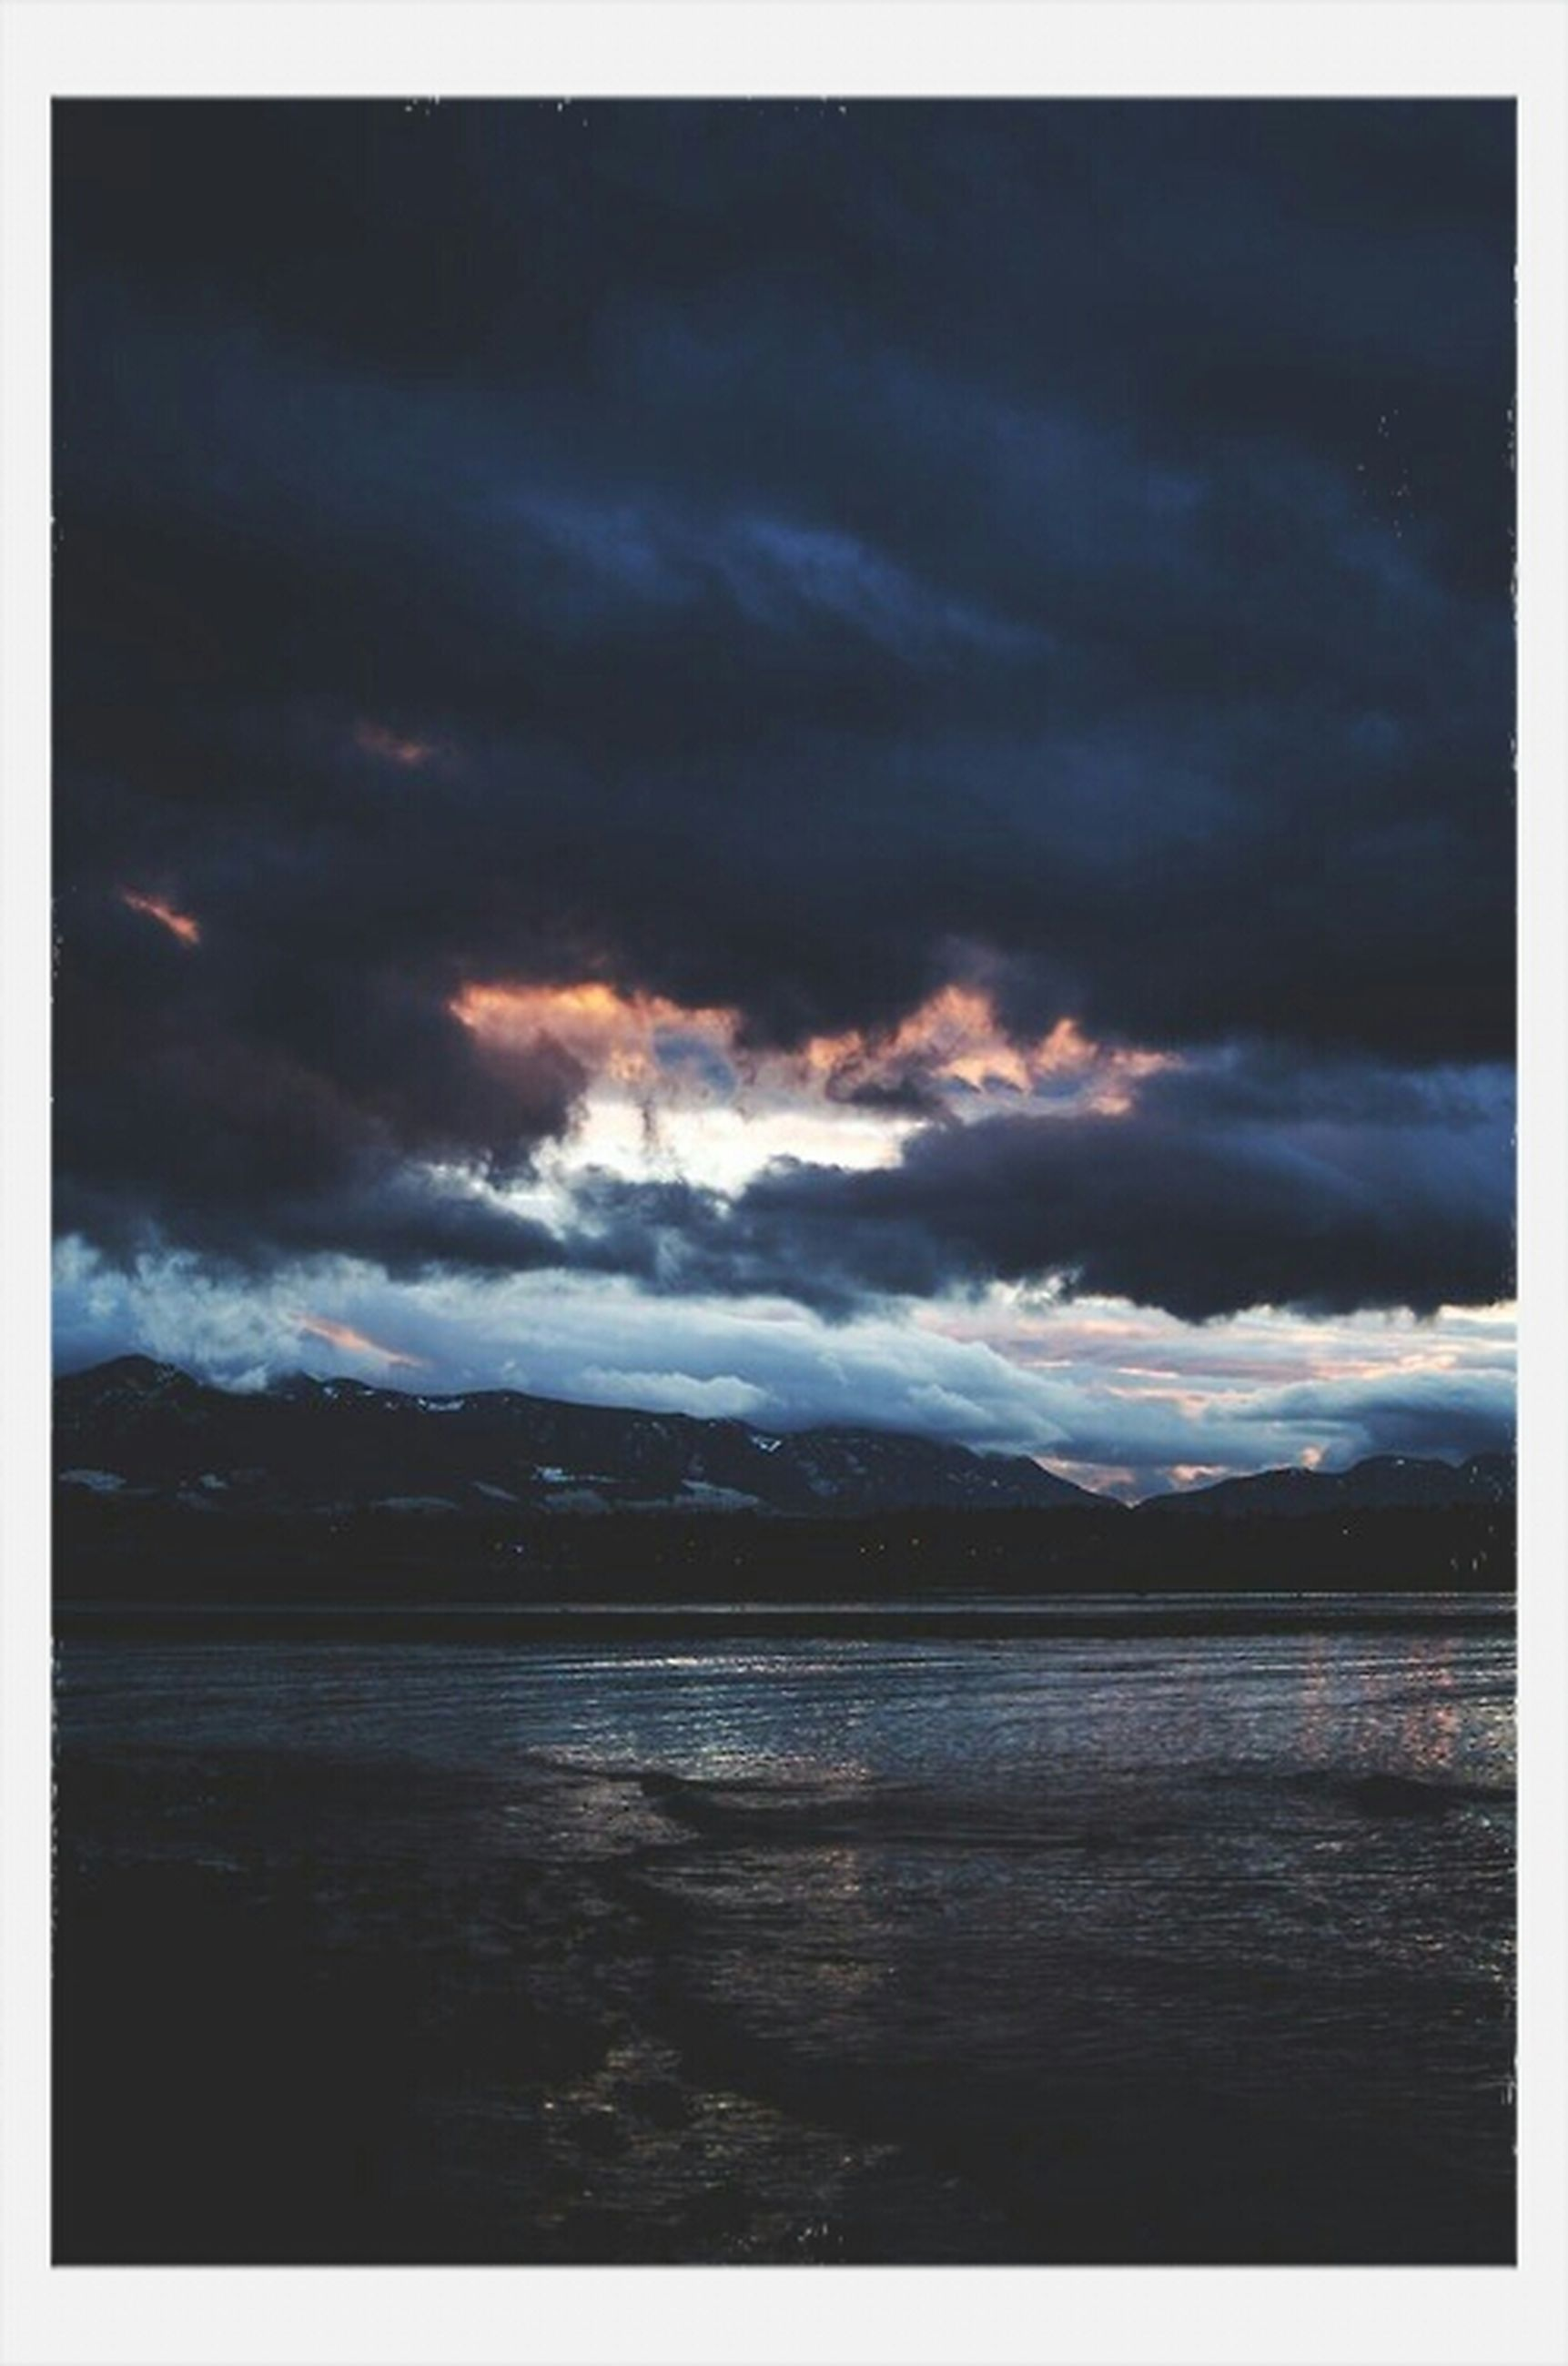 sky, transfer print, water, cloud - sky, cloudy, scenics, tranquil scene, tranquility, auto post production filter, beauty in nature, weather, sea, nature, overcast, cloud, storm cloud, dusk, idyllic, lake, dramatic sky